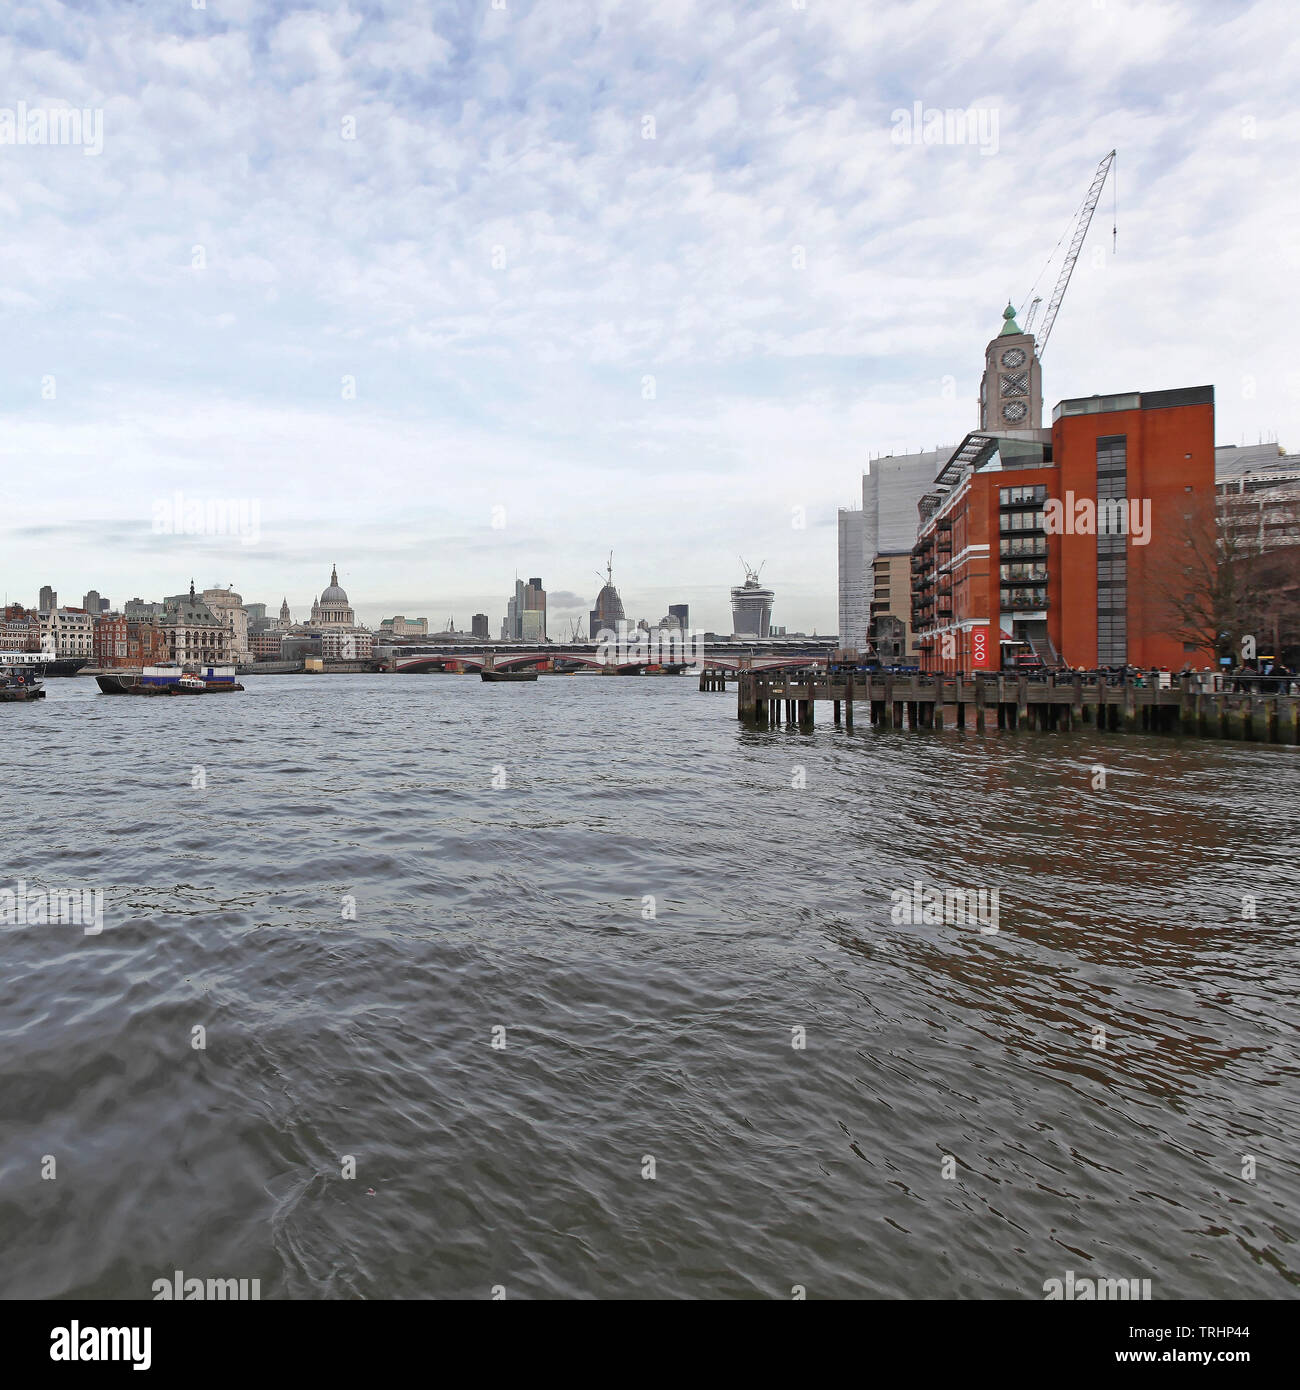 London, United Kingdom - January 26, 2013: Oxo Tower Building at River Thames Southwark in London, UK. - Stock Image